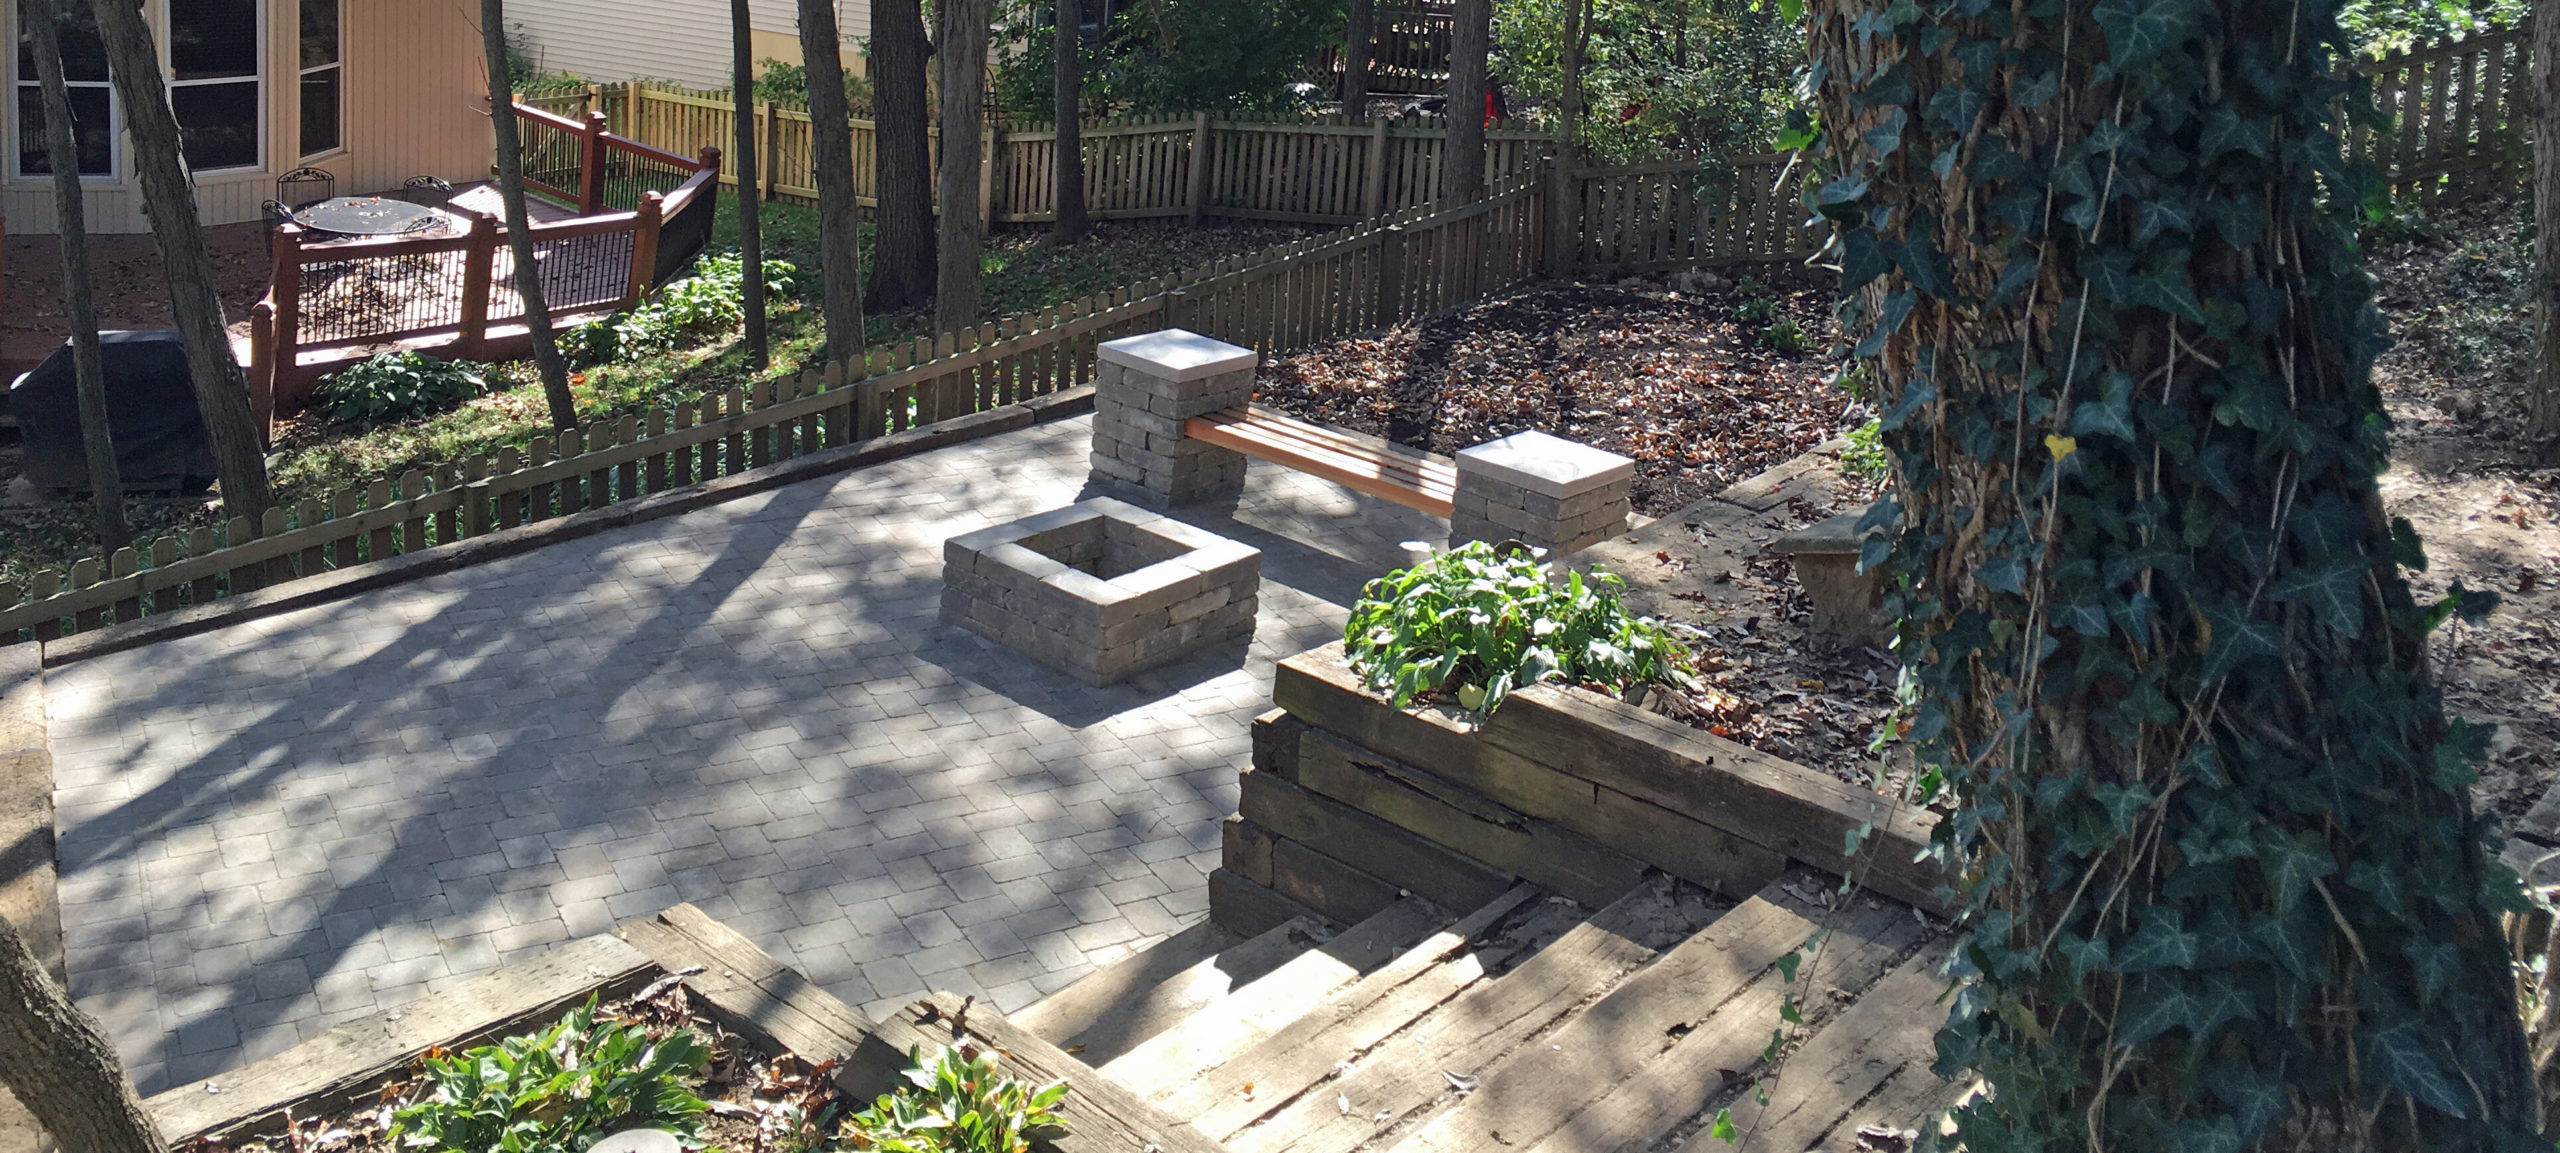 outdoor fire pit fireplace kansas city sk lawn and landscape